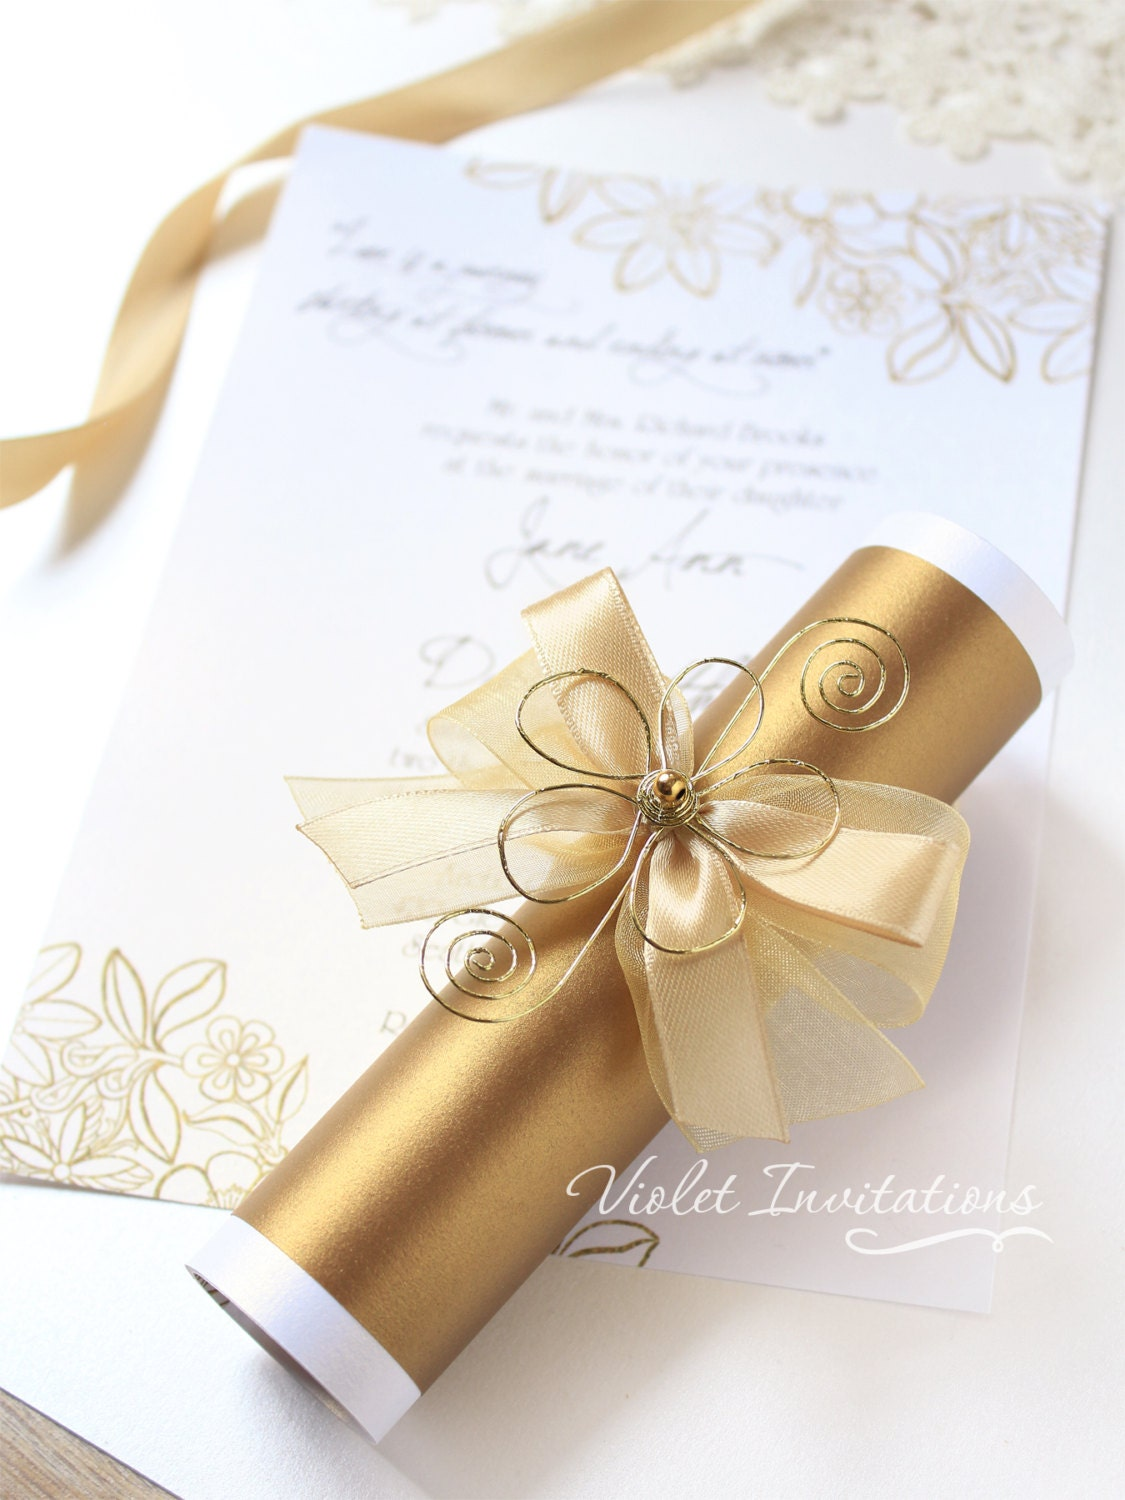 10 Handmade Gold Flower Scroll Invitations Wedding Invitation